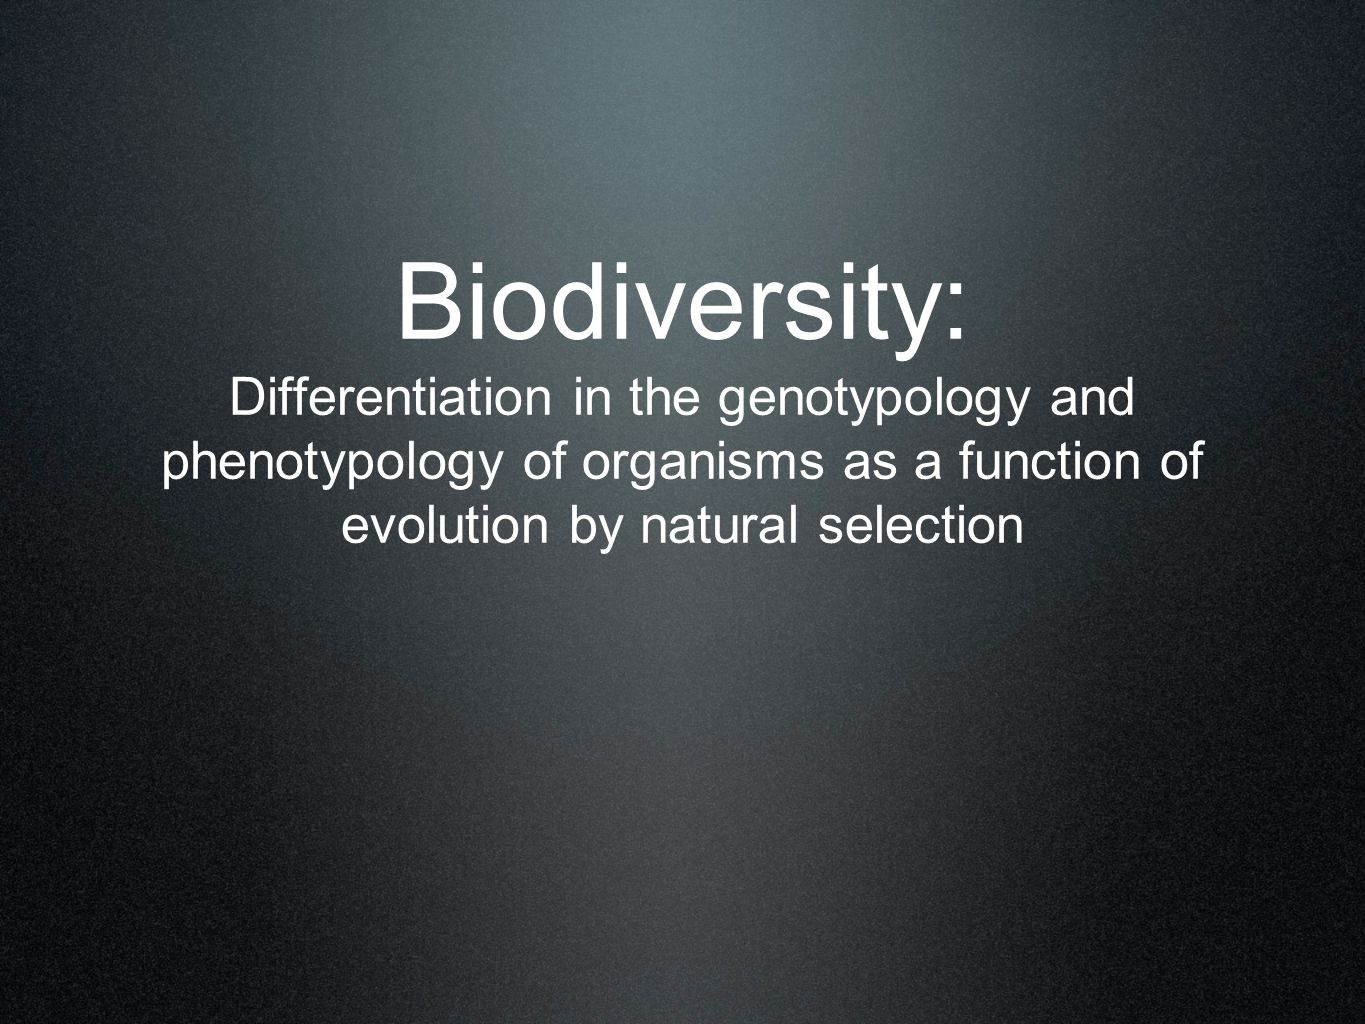 Biodiversity: Differentiation in the genotypology and phenotypology of organisms as a function of evolution by natural selection